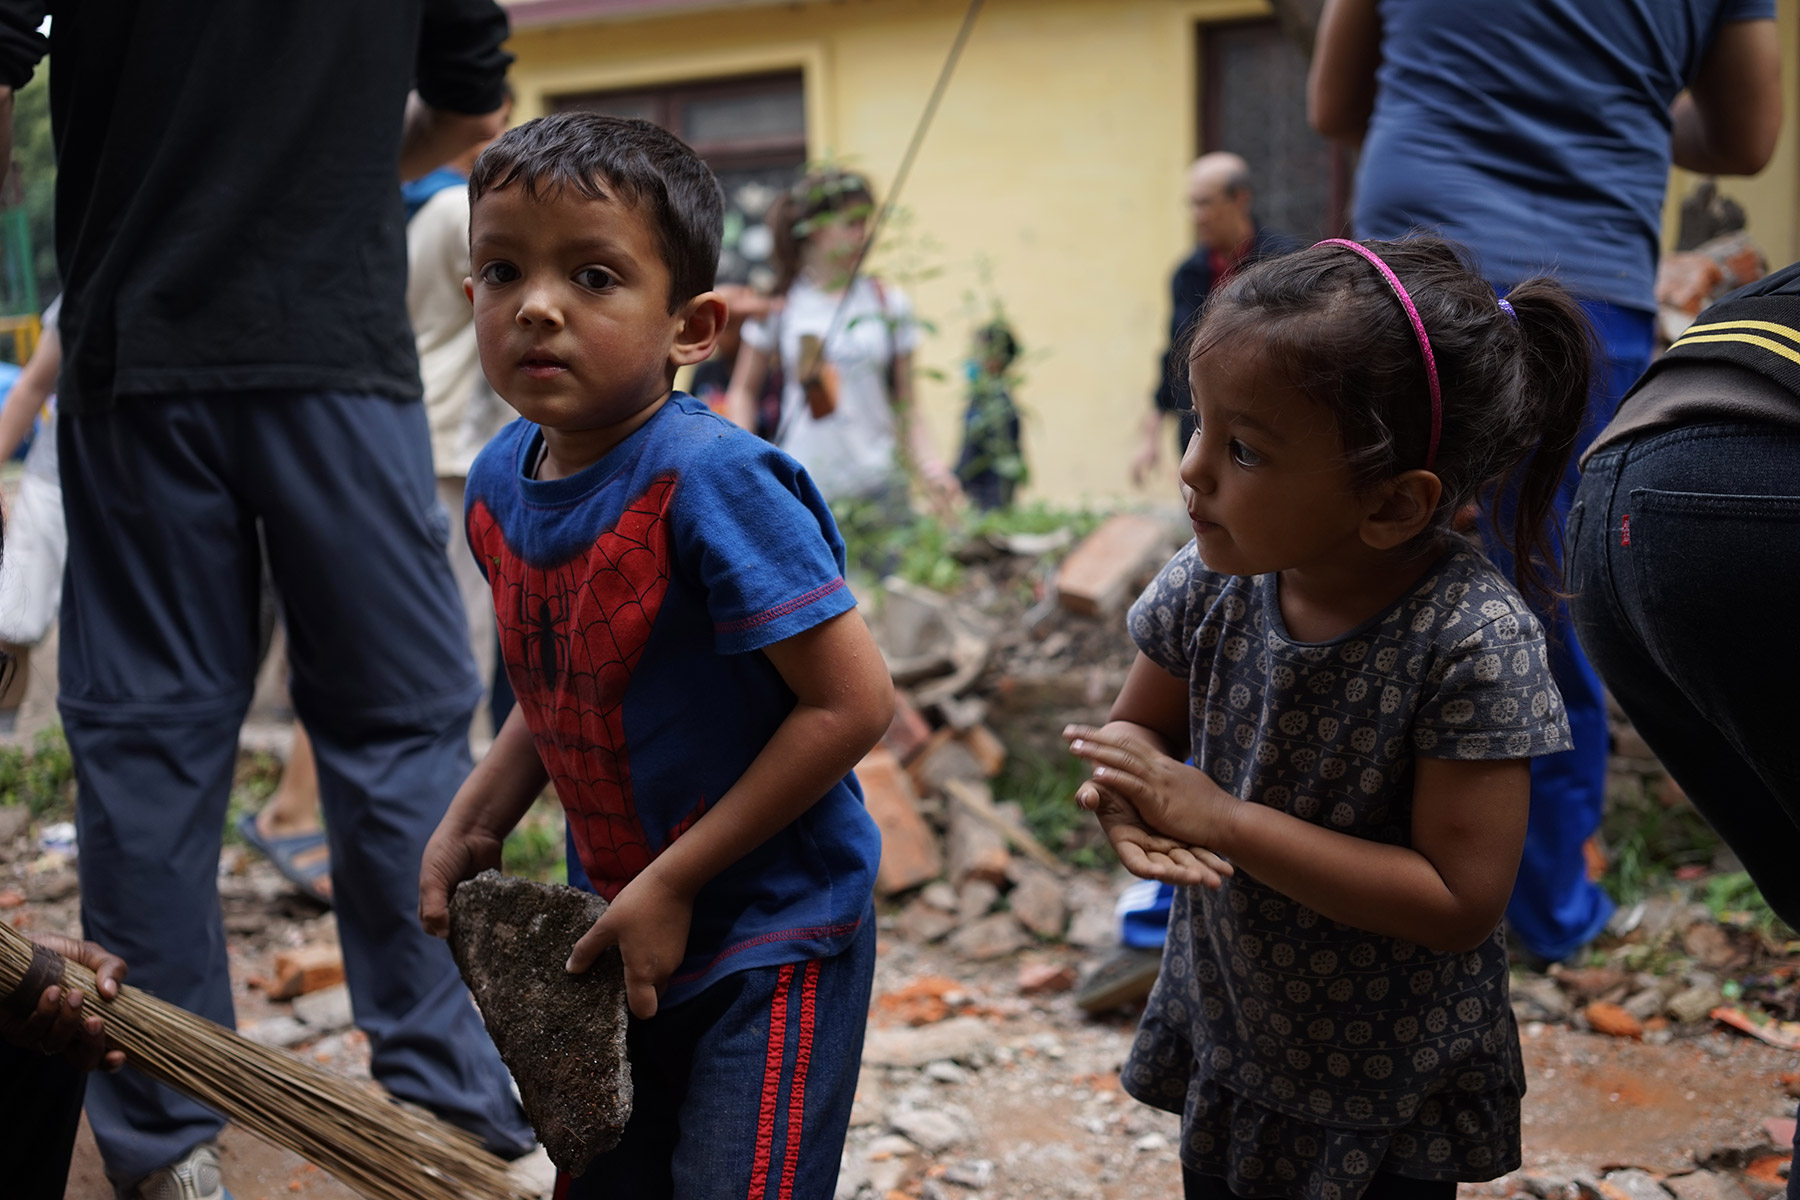 Children helping cleaning up rubble after the earthquake